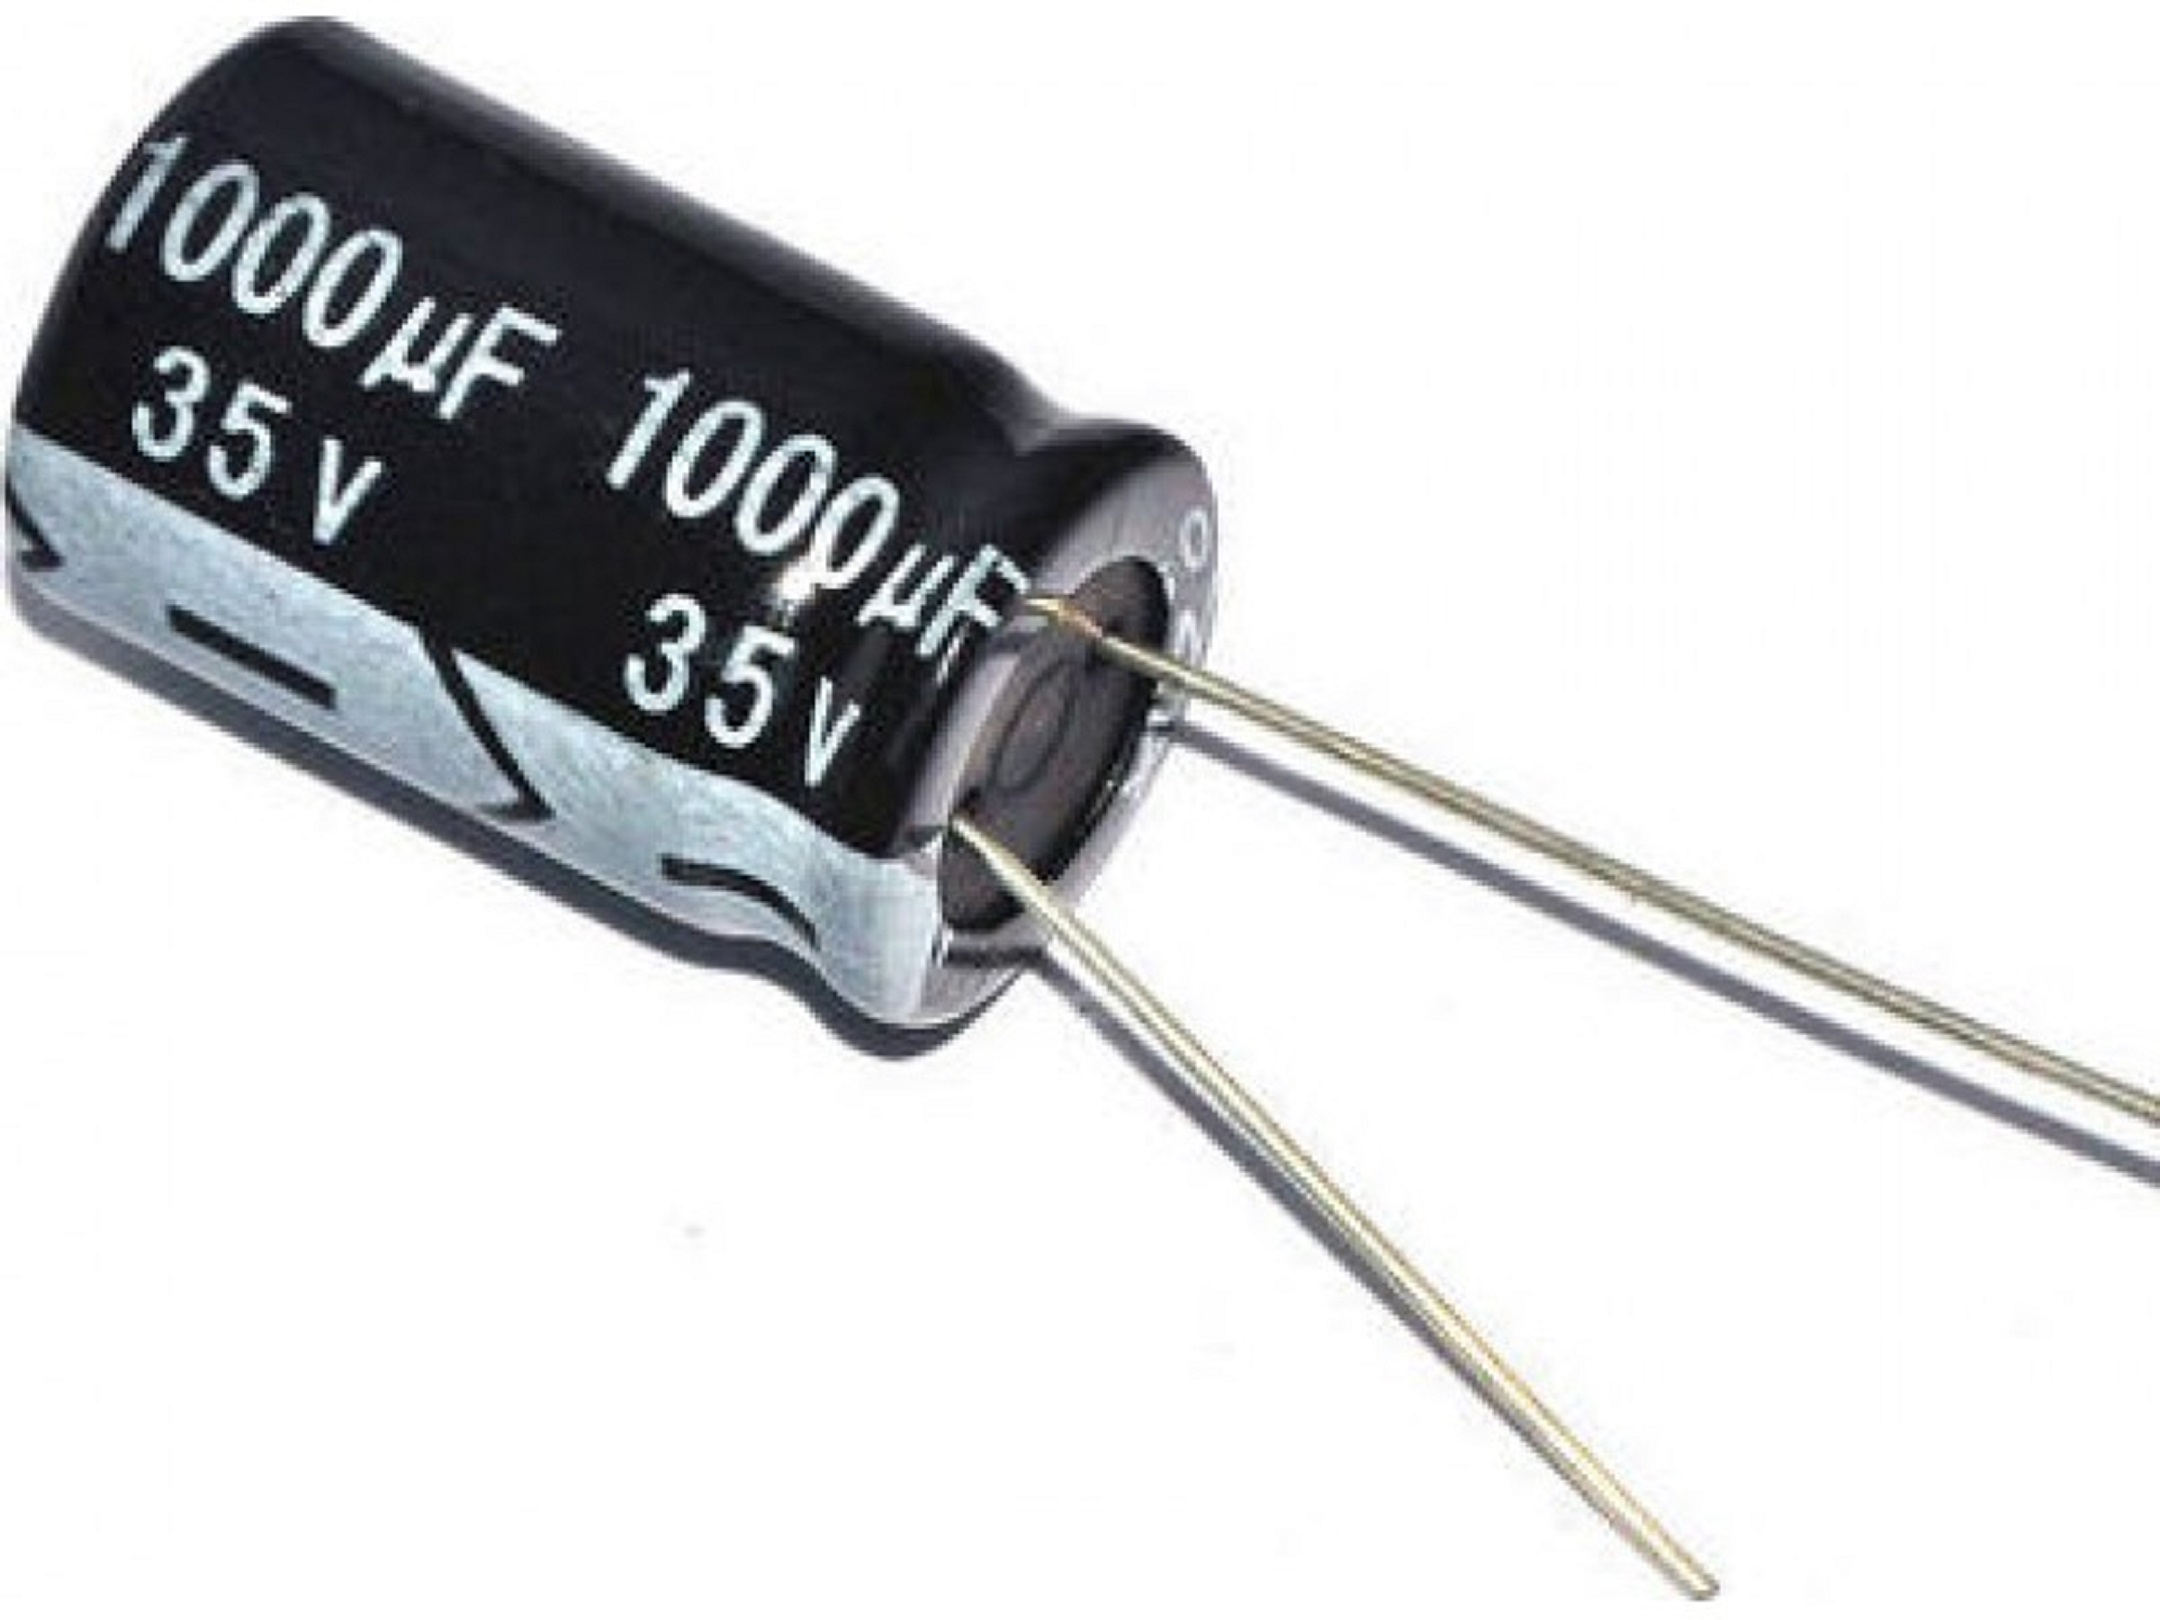 1000uf 35v Capacitor Capacitor Tester 100uf Capacitor